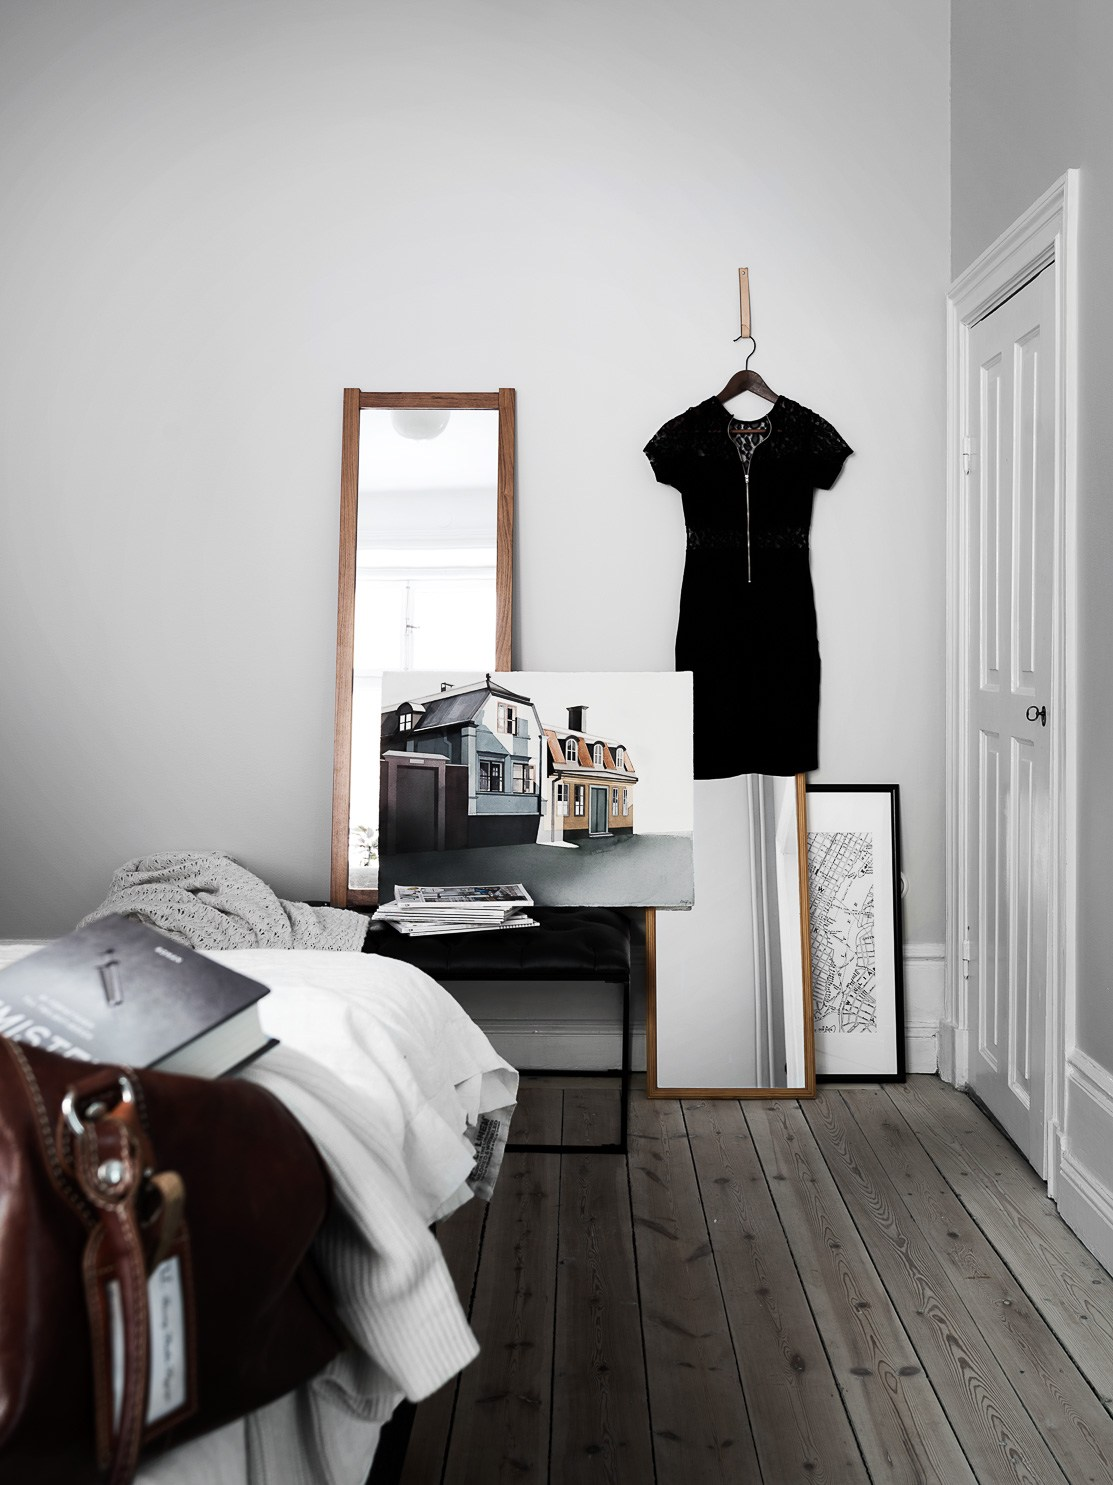 high ceilings apartment with wooden floors, white painted walls, danish design, bedroom